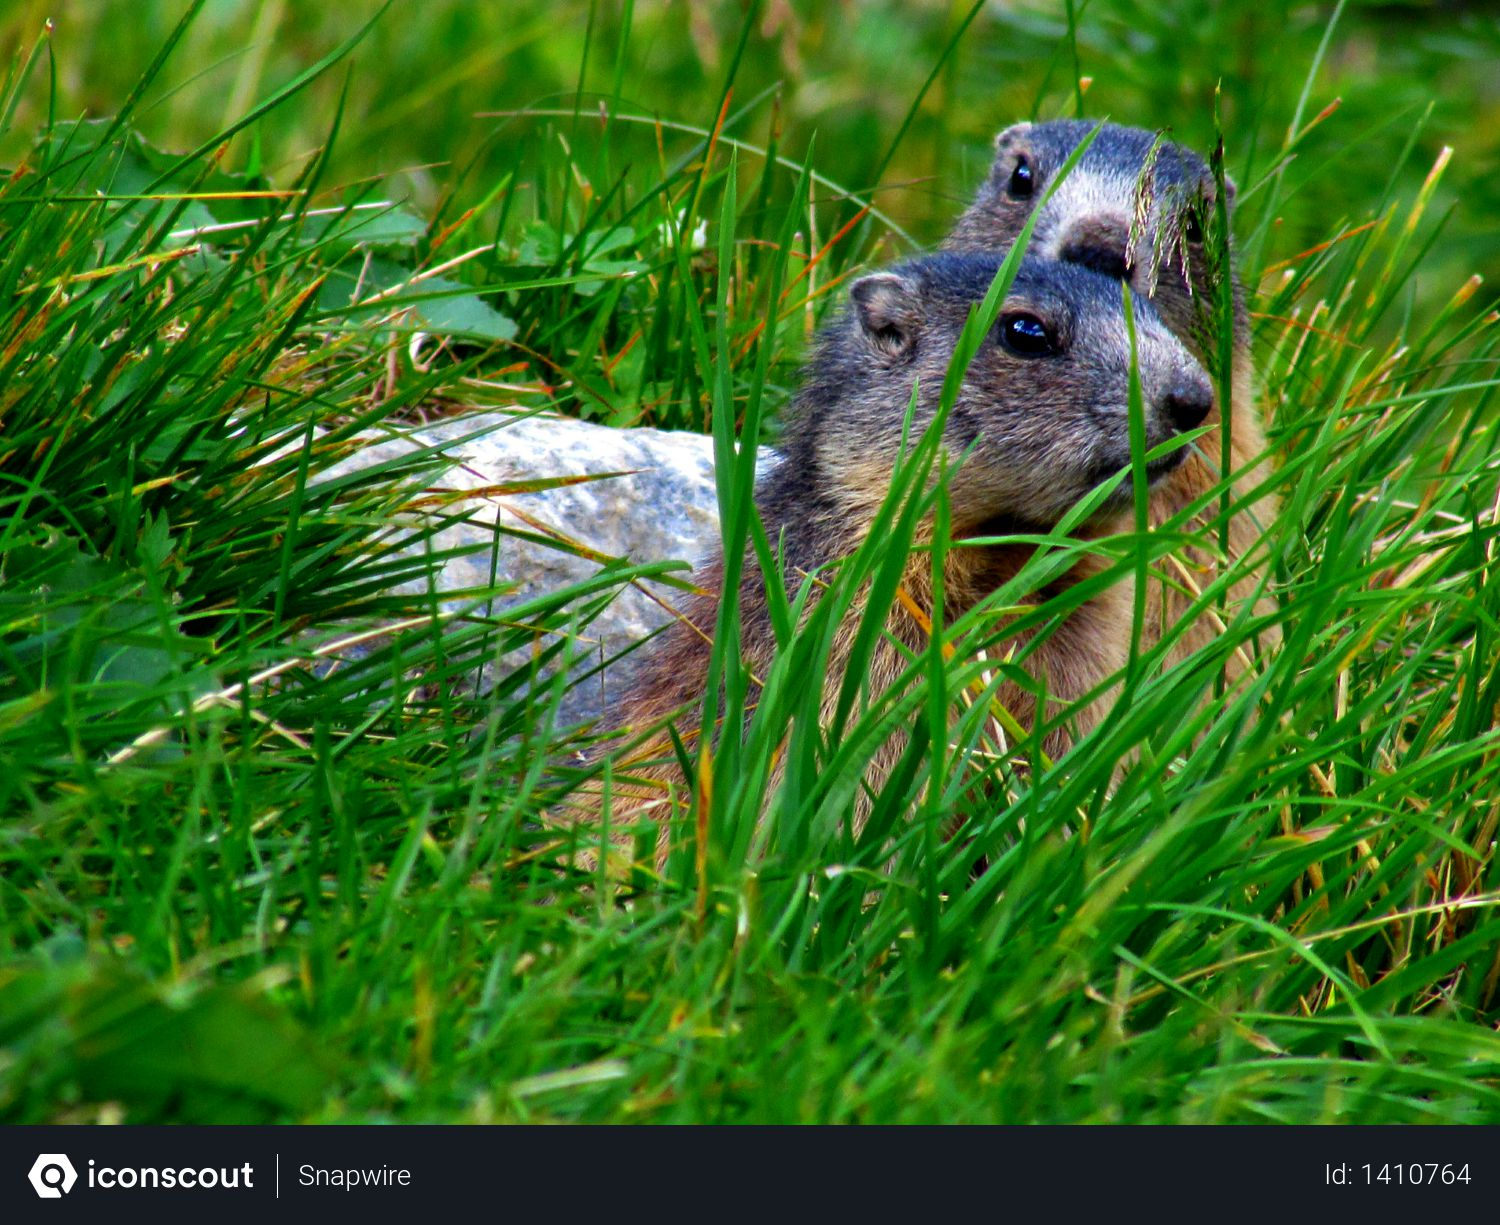 In grass seating animal Photo